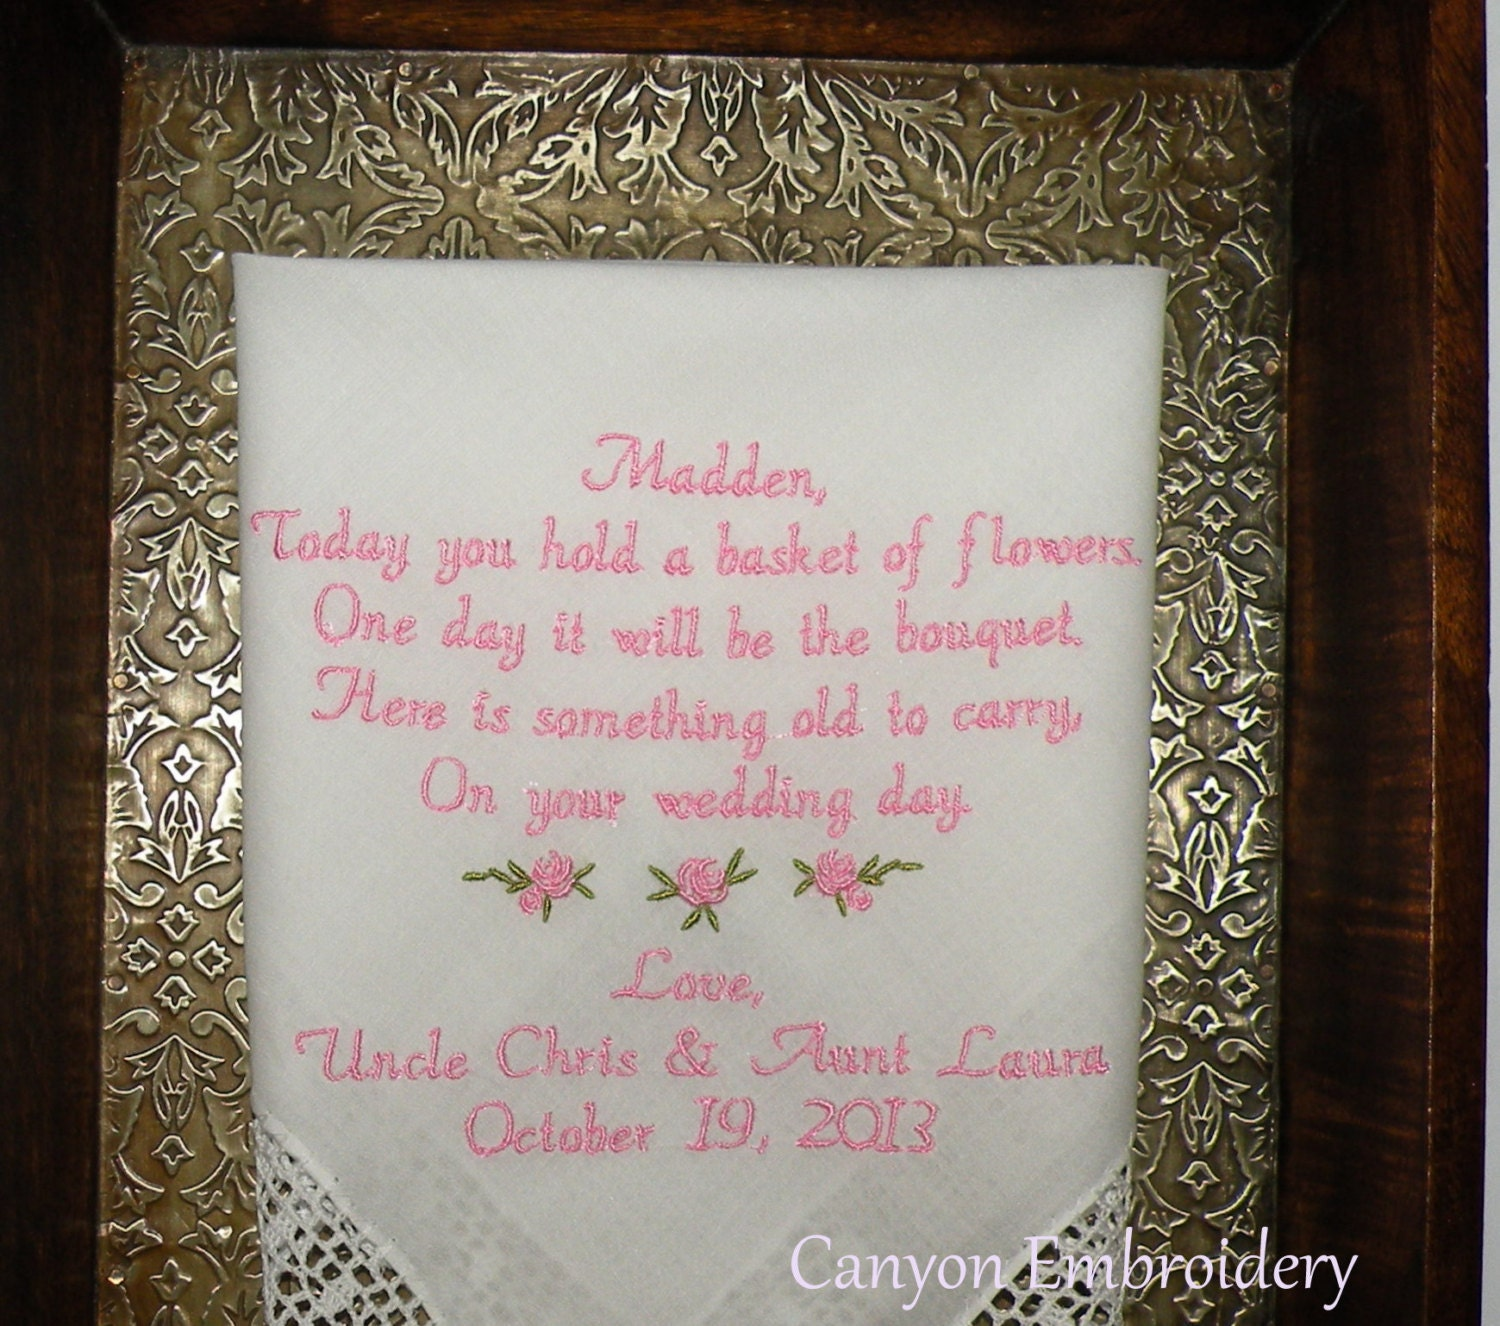 Wedding Gifts For Girl: Flower Girl Wedding Gift Embroidered Wedding Handkerchief By